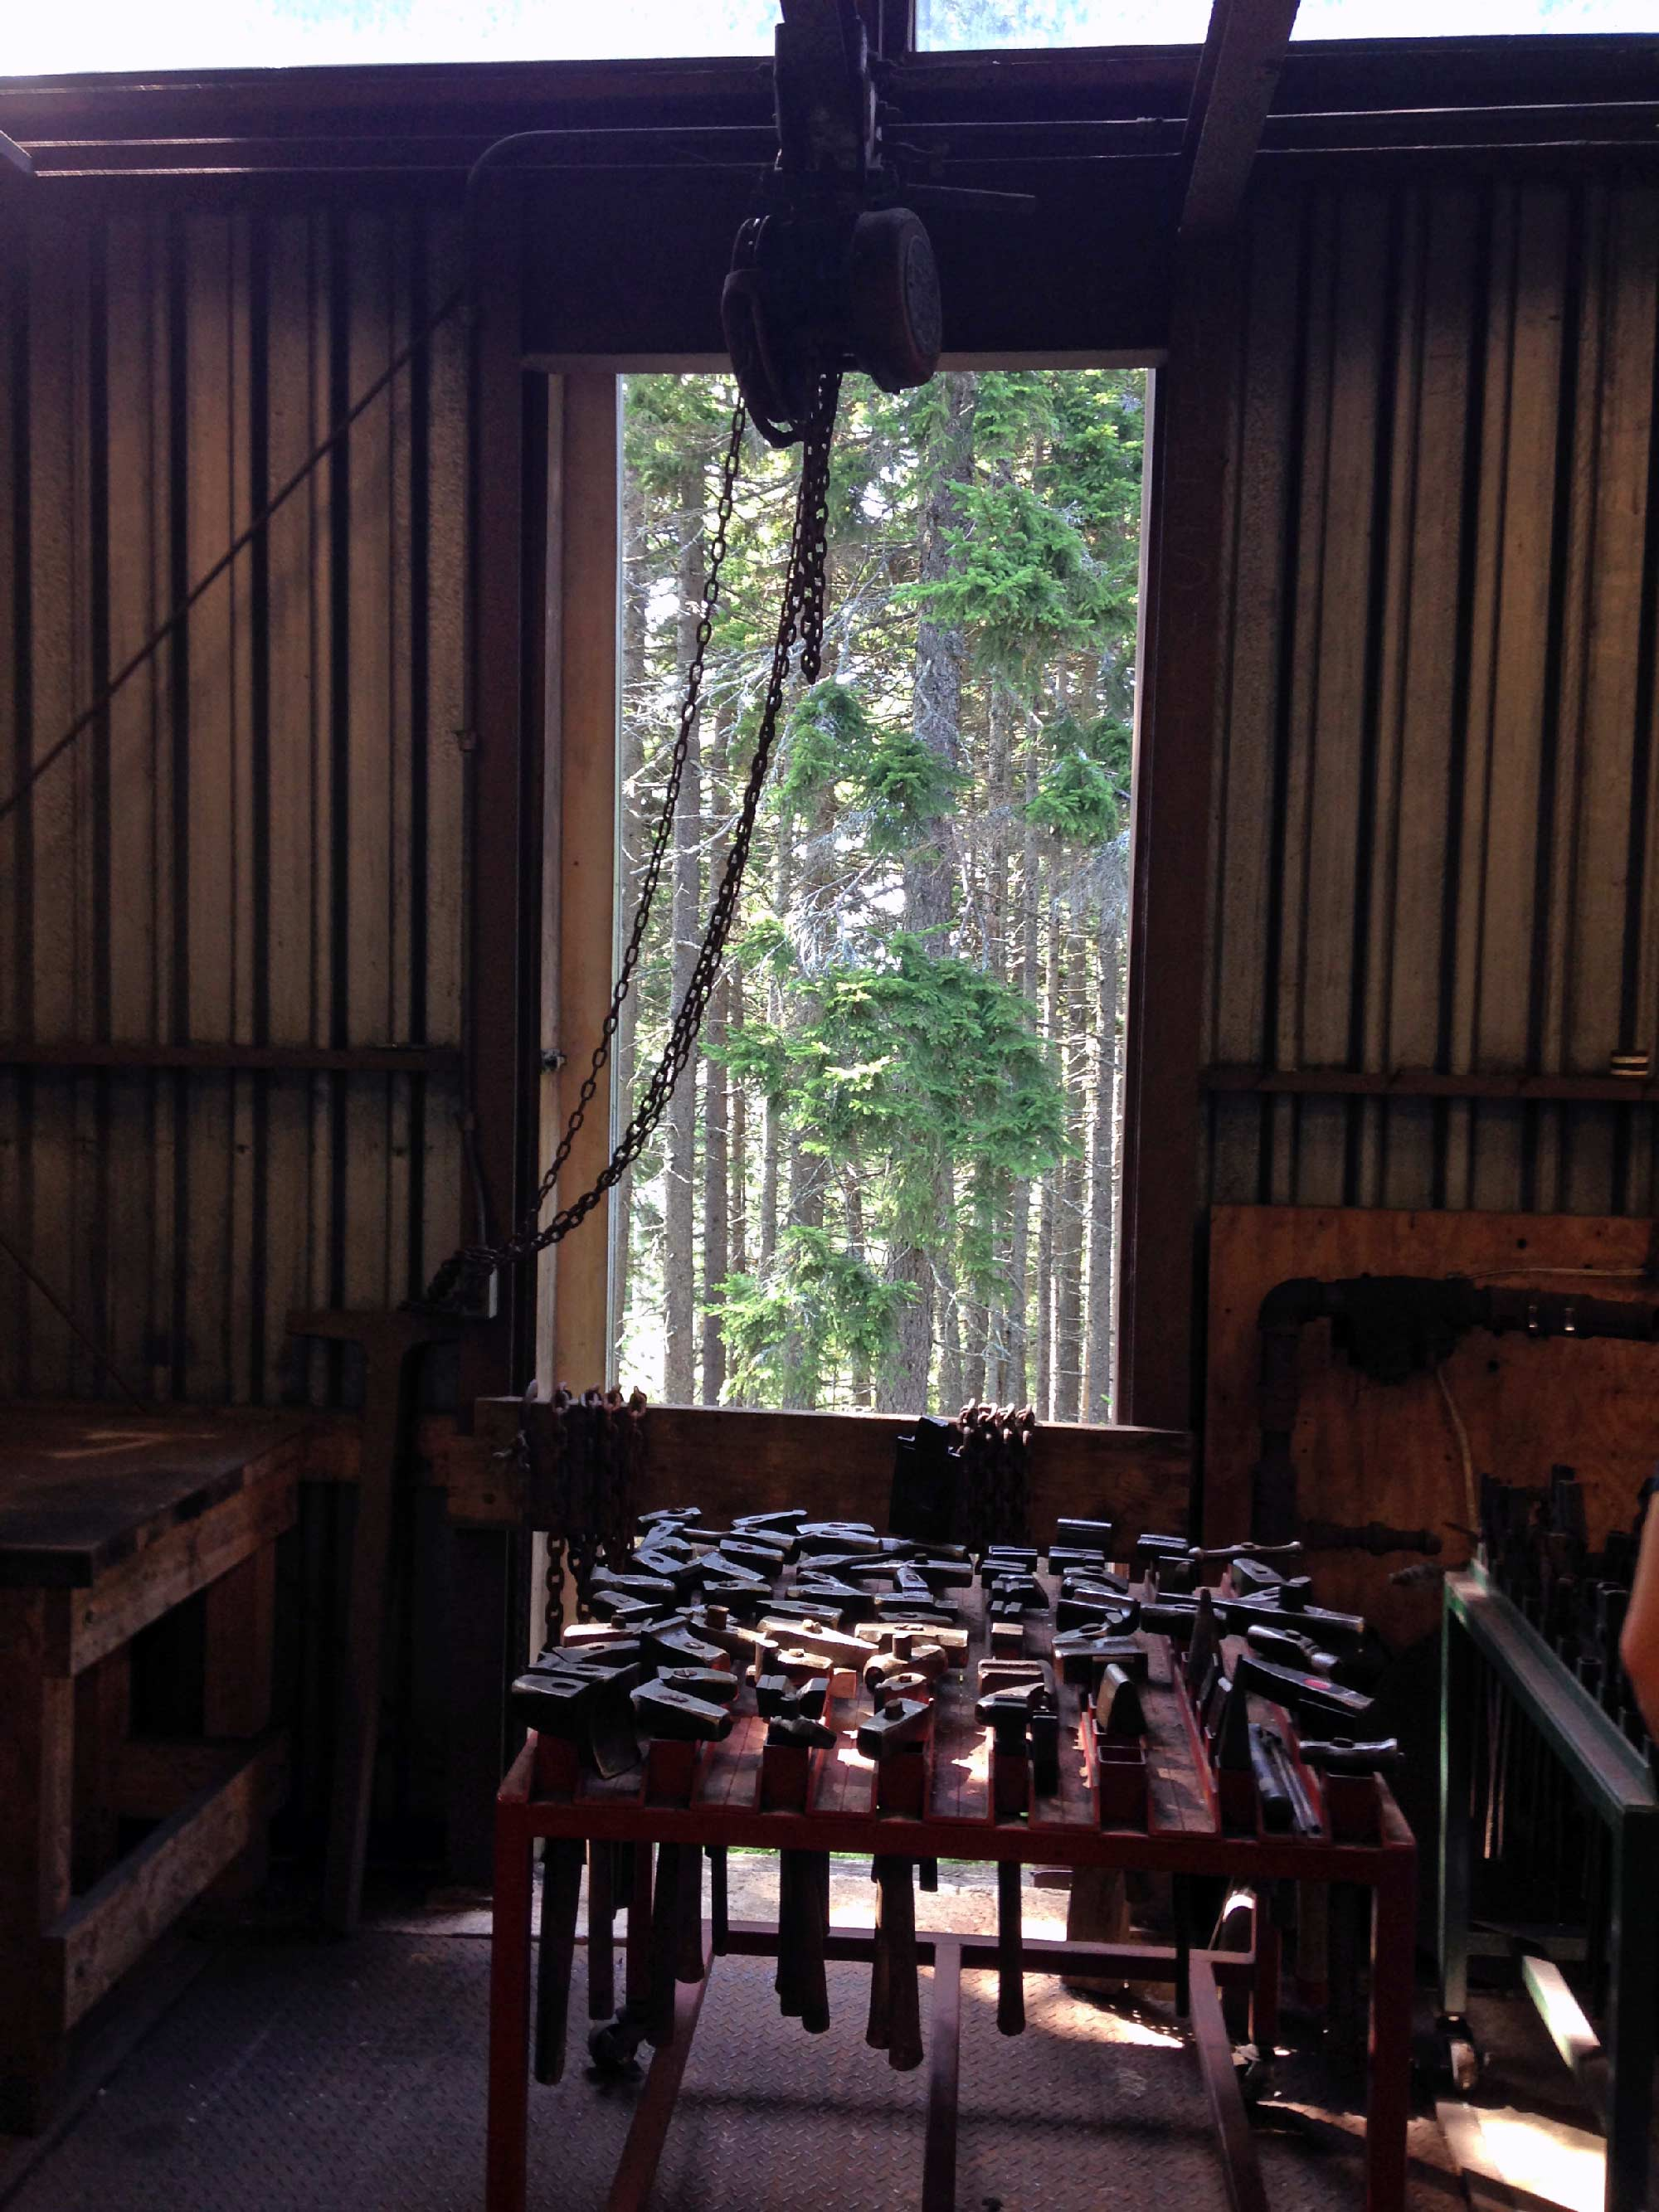 The view from Kaki's forge: across the hammers through the foundry window to the Spruces.